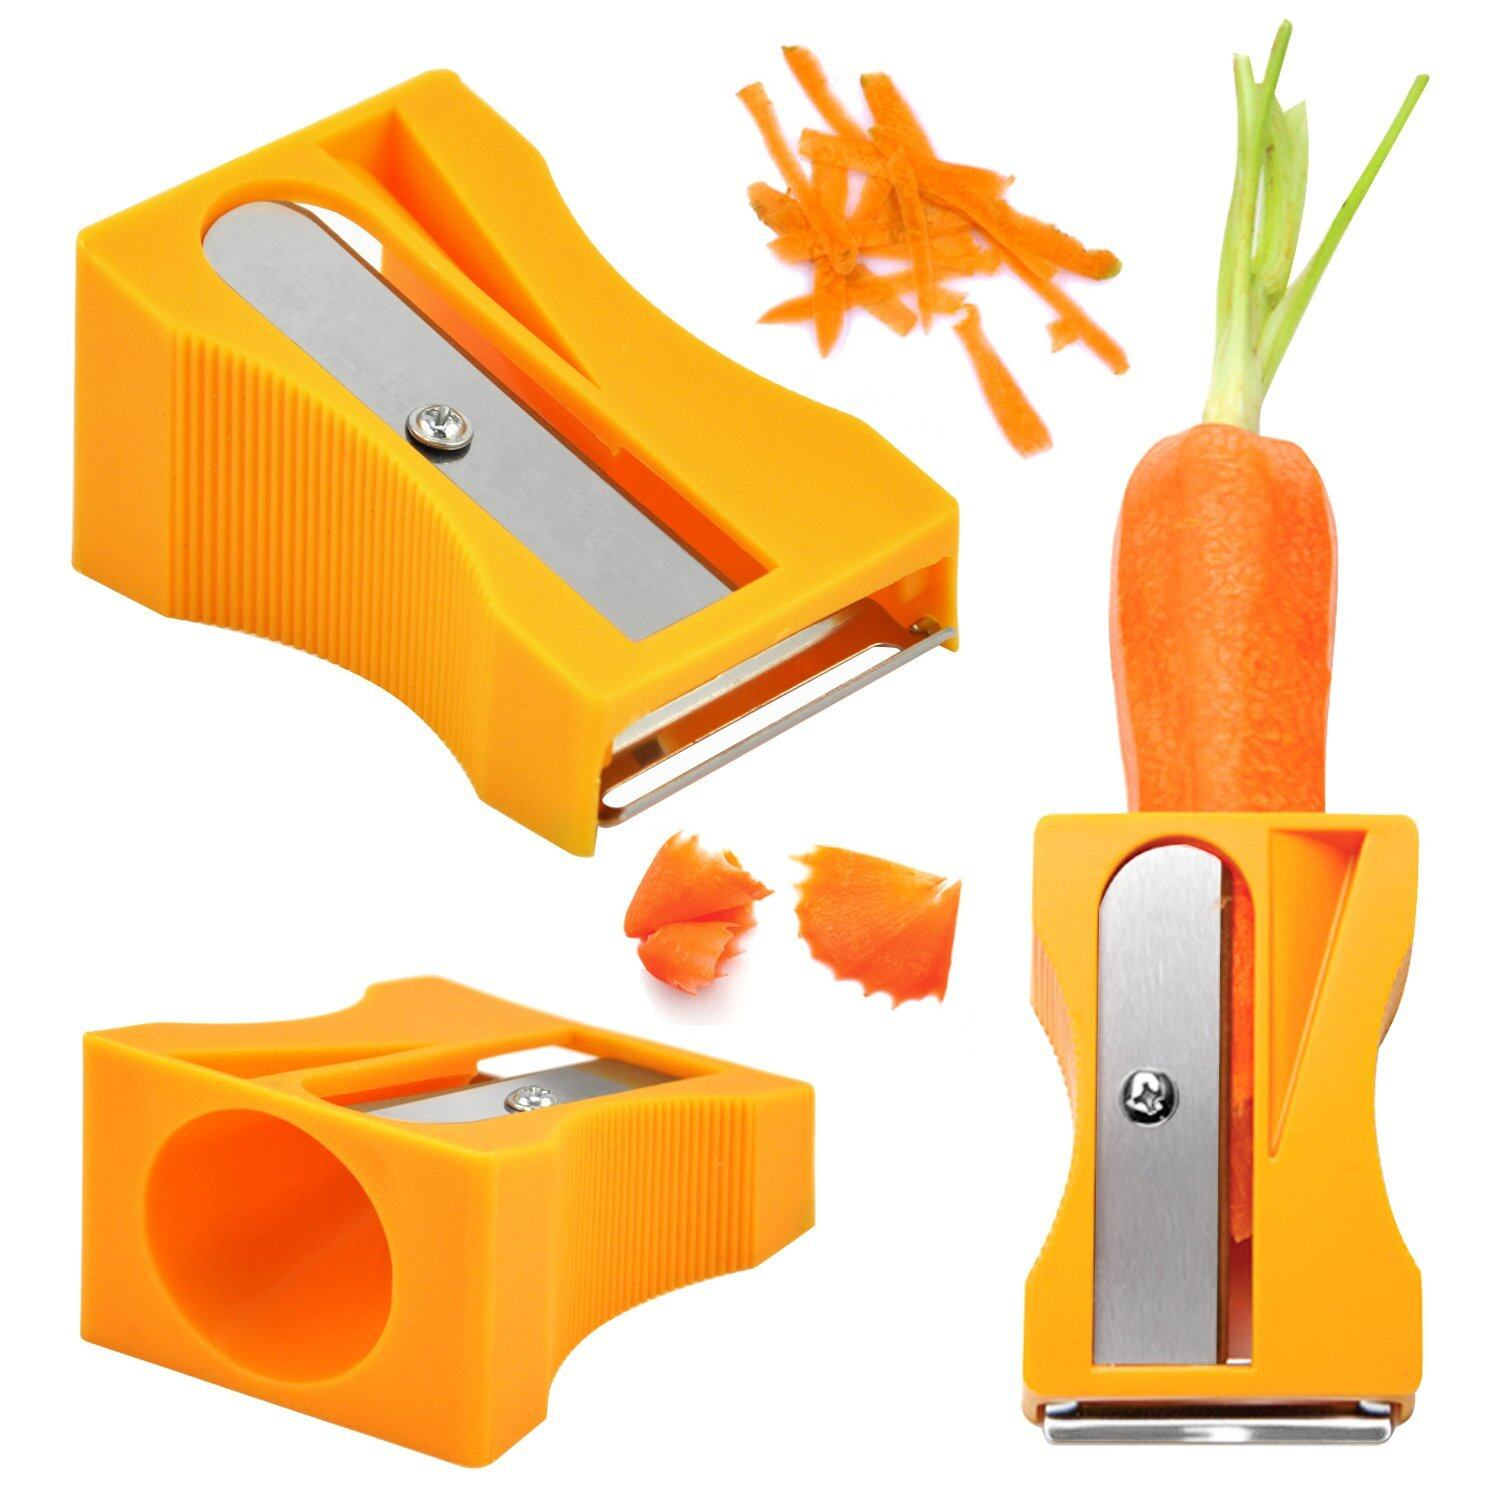 READY STOCK Japan Vegetables Sharpener & Peeler - 7478